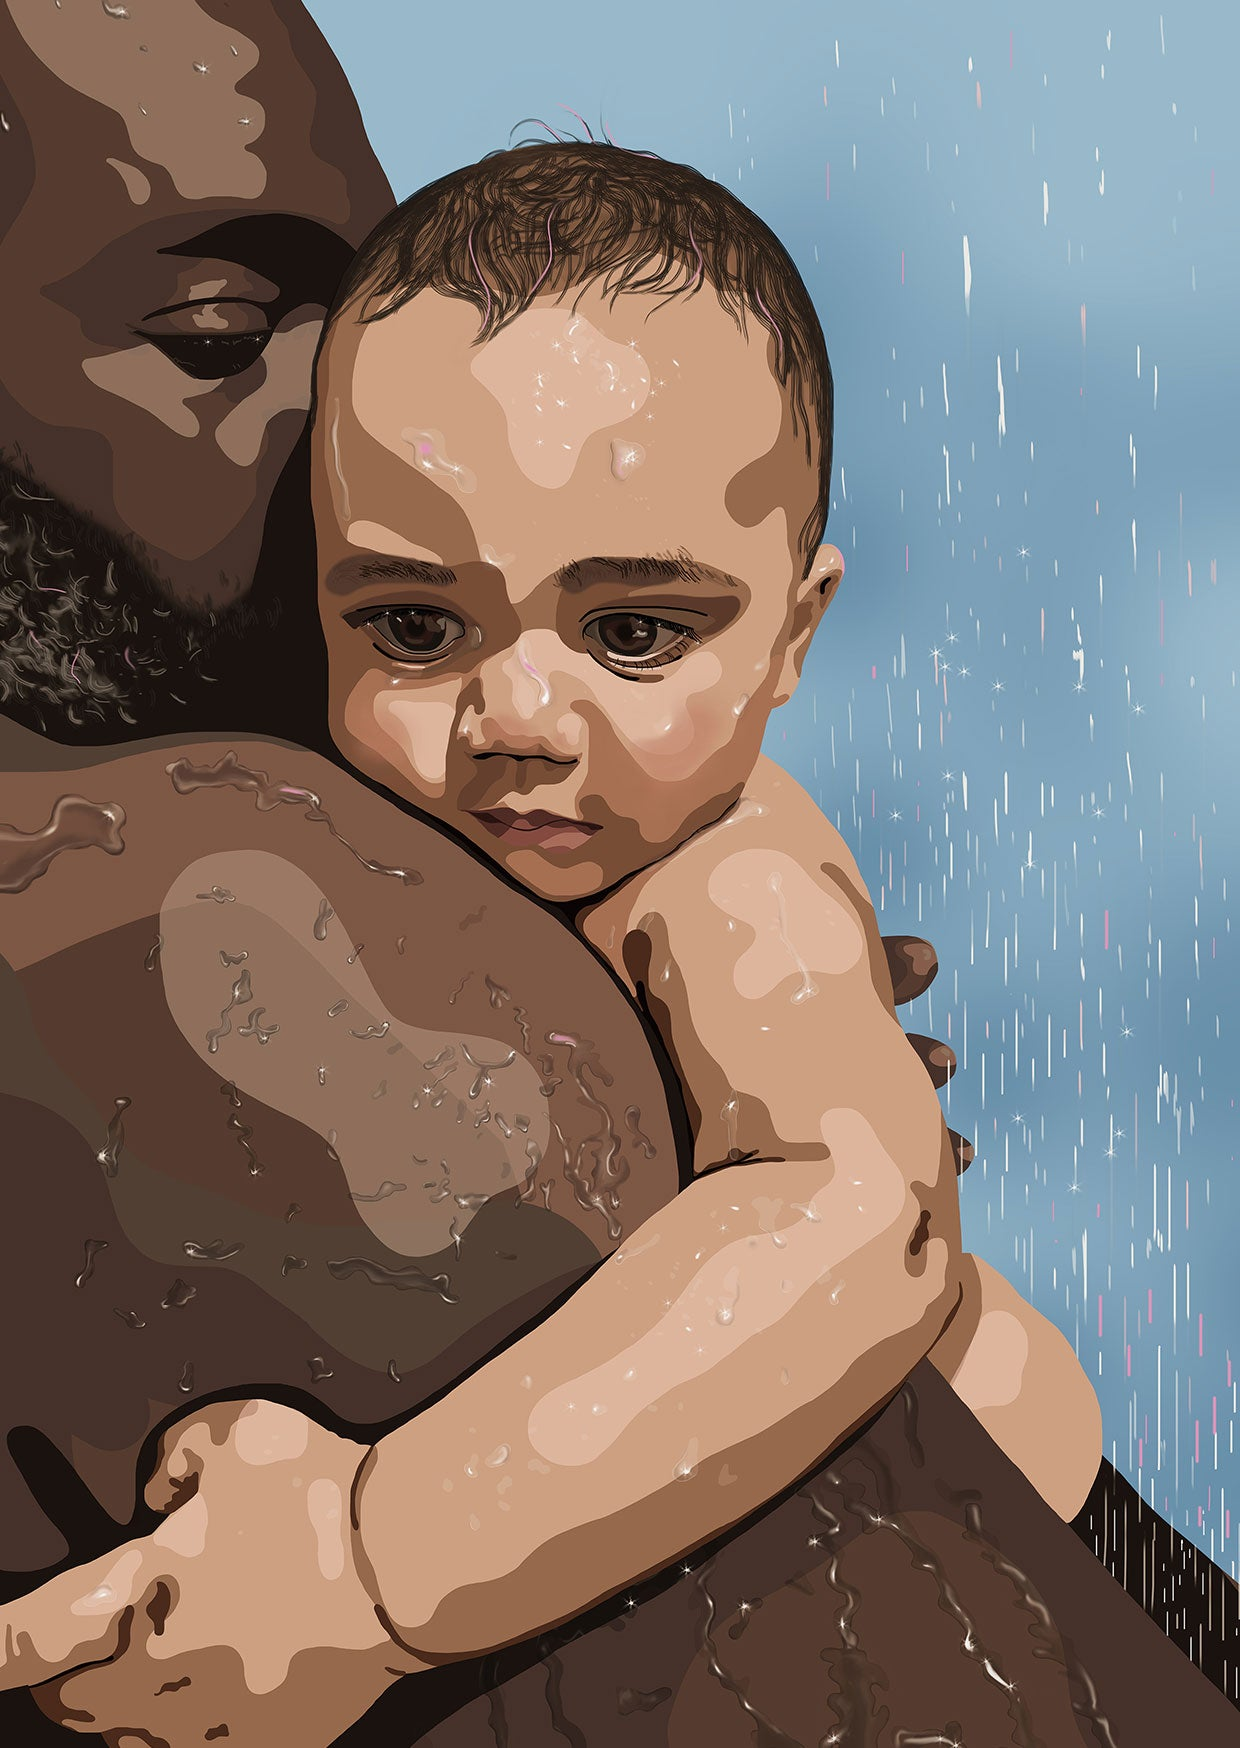 Digital portrait illustration of father holding baby son in shower